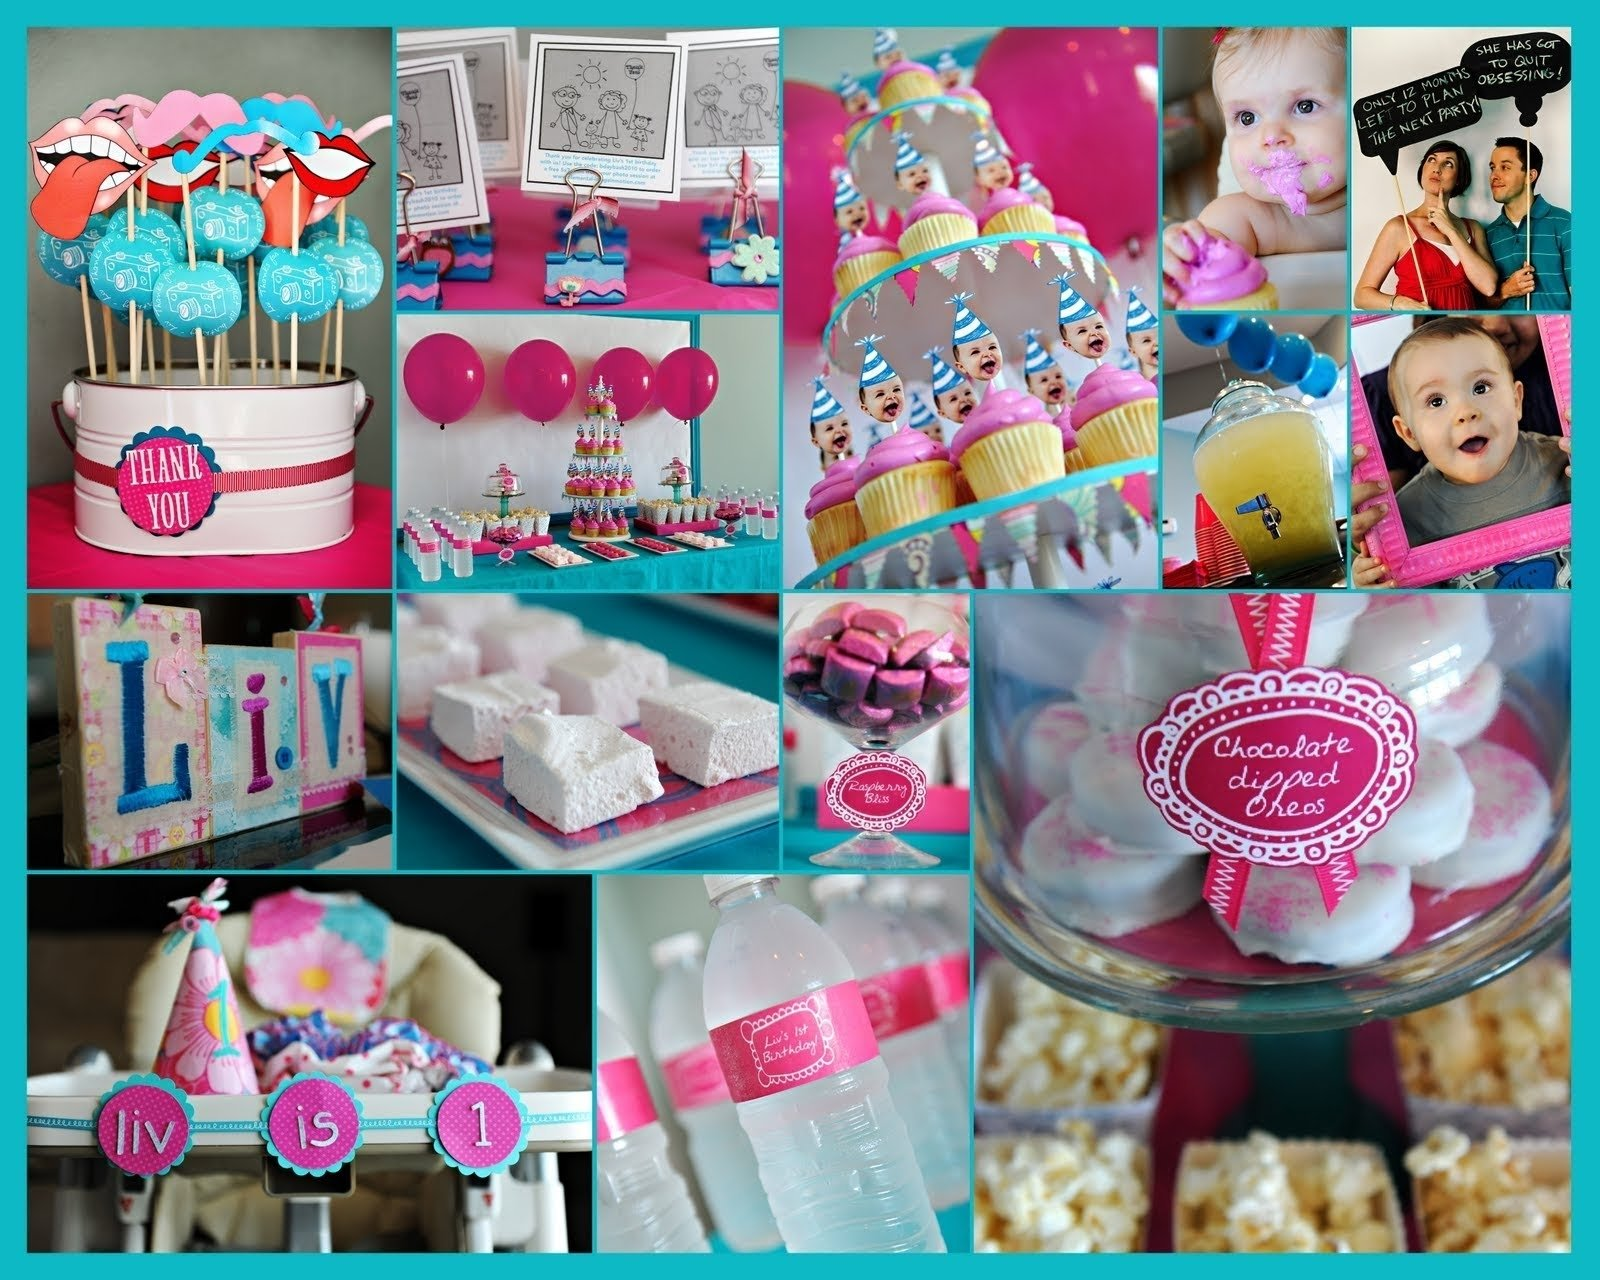 10 Most Recommended Ideas For 1 Year Old Birthday first birthday party ideas 1st birthday party ideas kids 31 2020